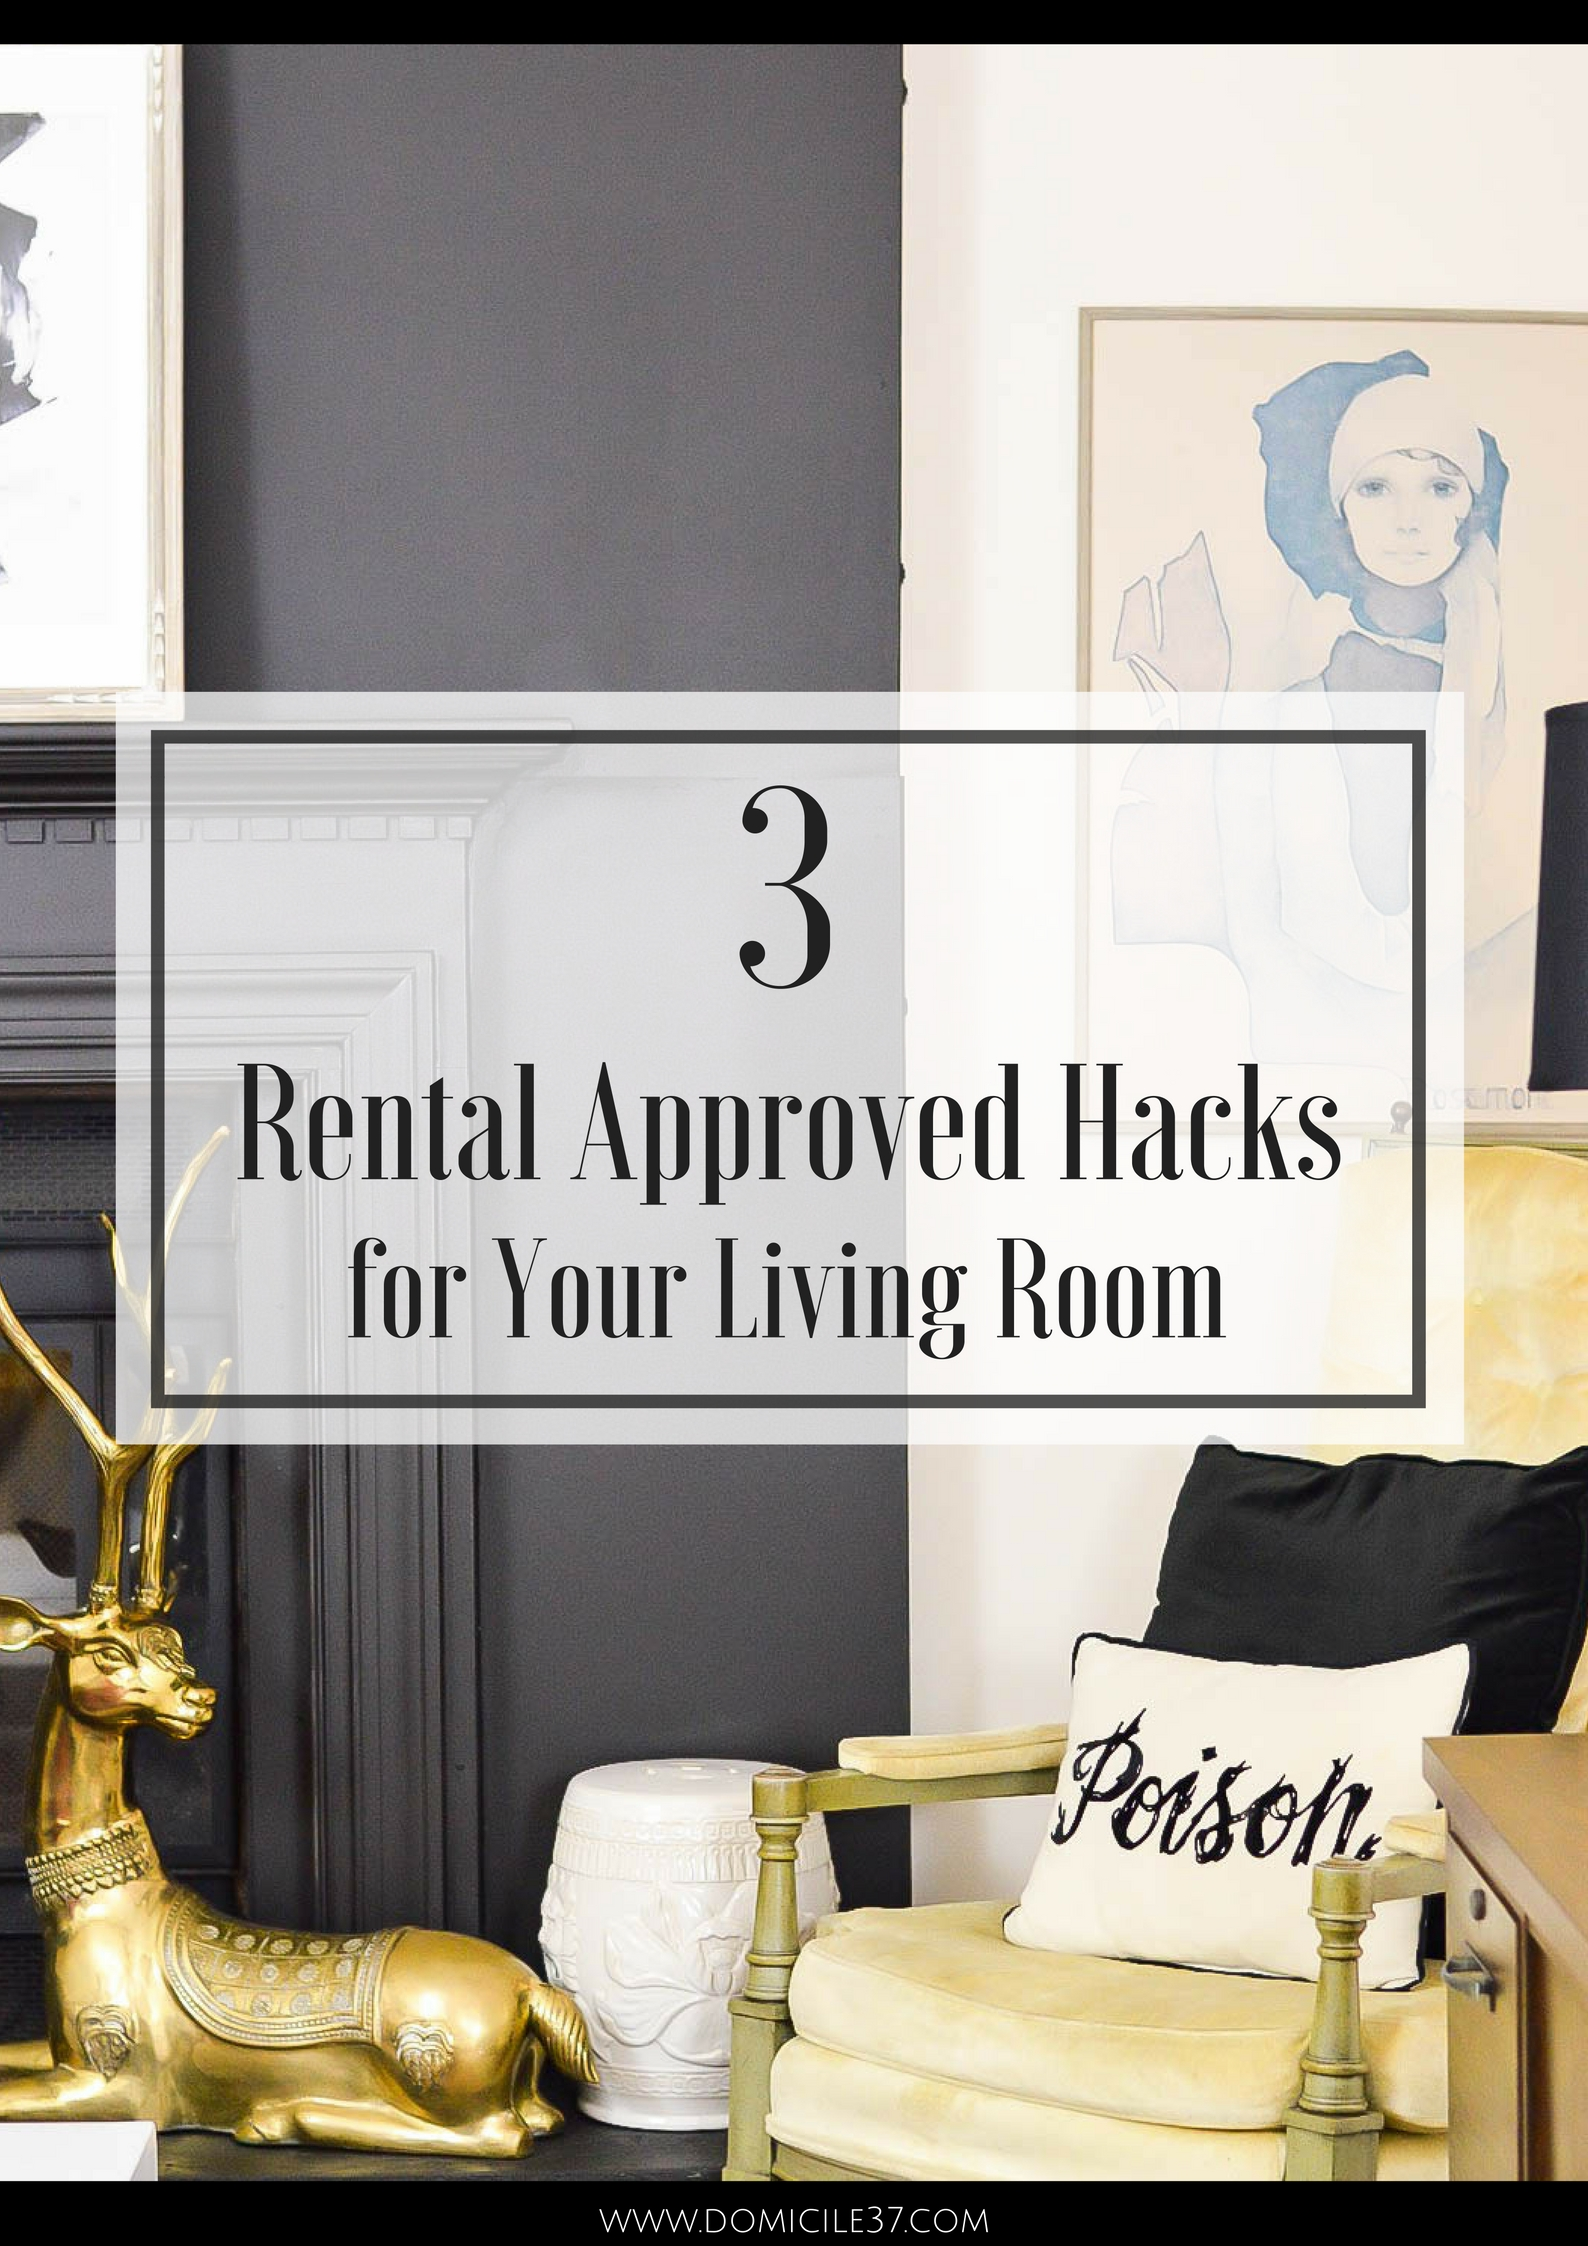 Small space solutions | rental friendly DIY | Rental Approved | Rental living | faux fireplace facade | marble fireplace surround DIY | faux built-ins